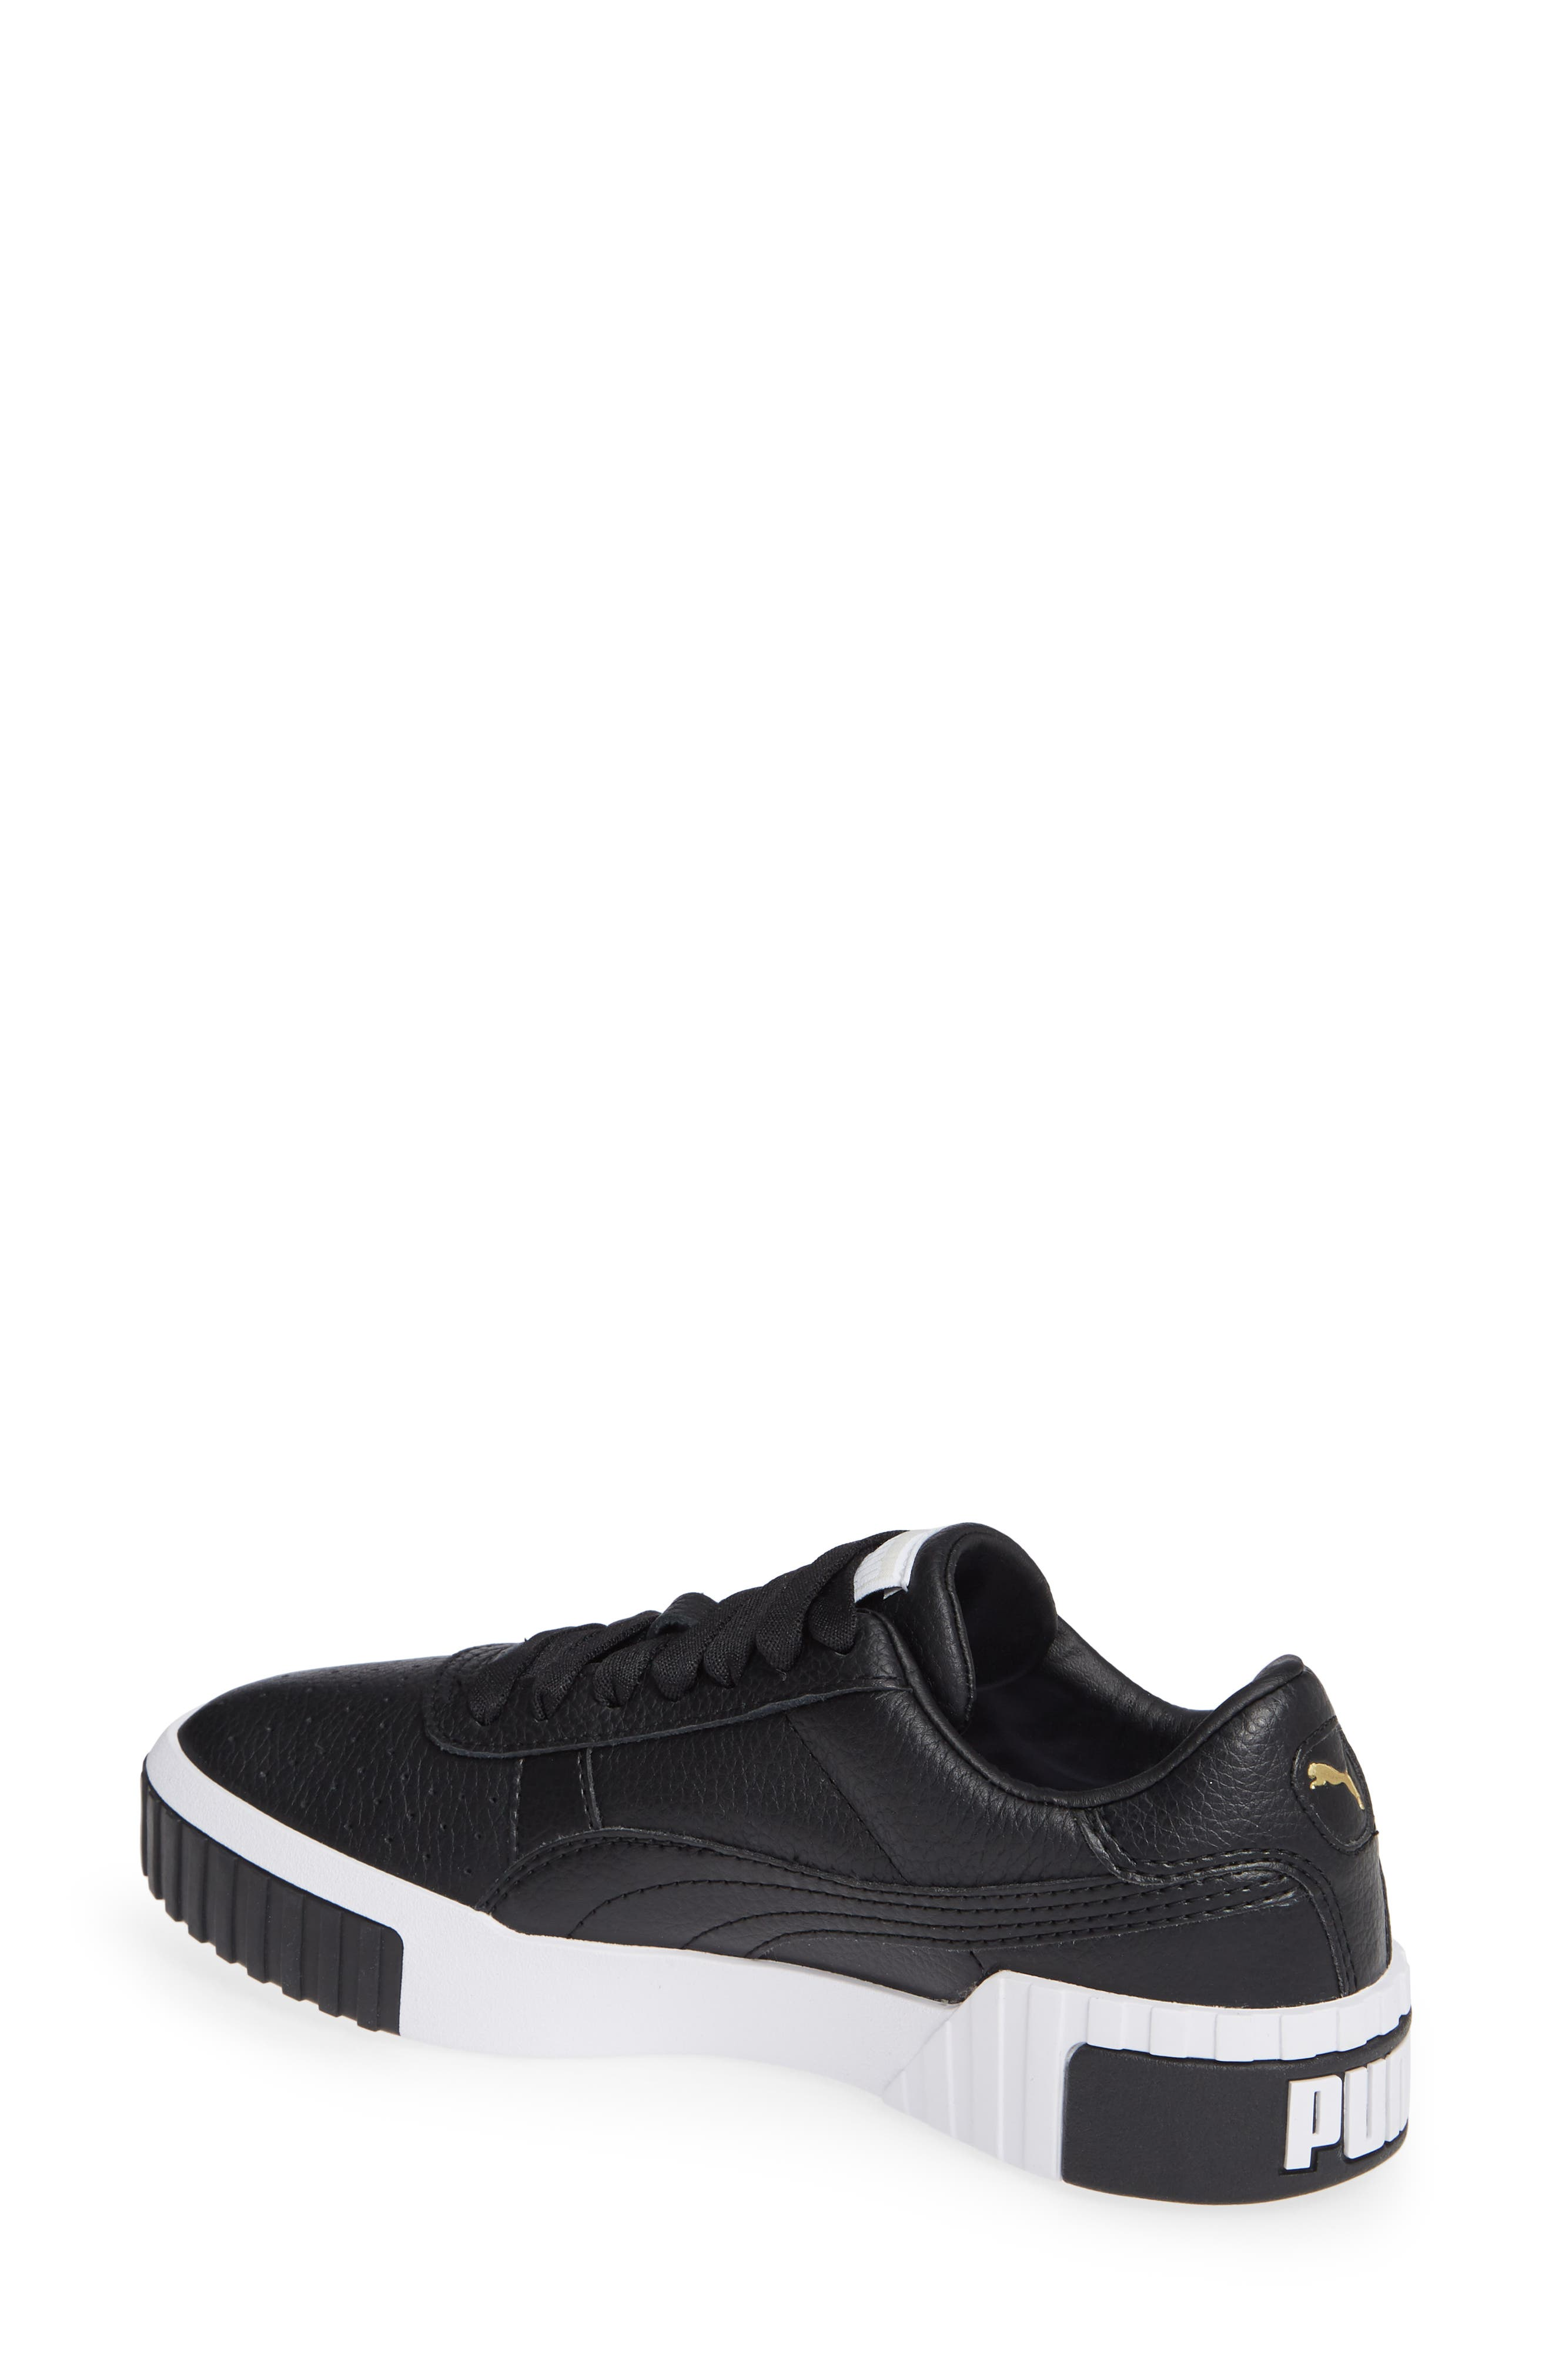 PUMA, Cali Sneaker, Alternate thumbnail 2, color, PUMA BLACK/ PUMA WHITE